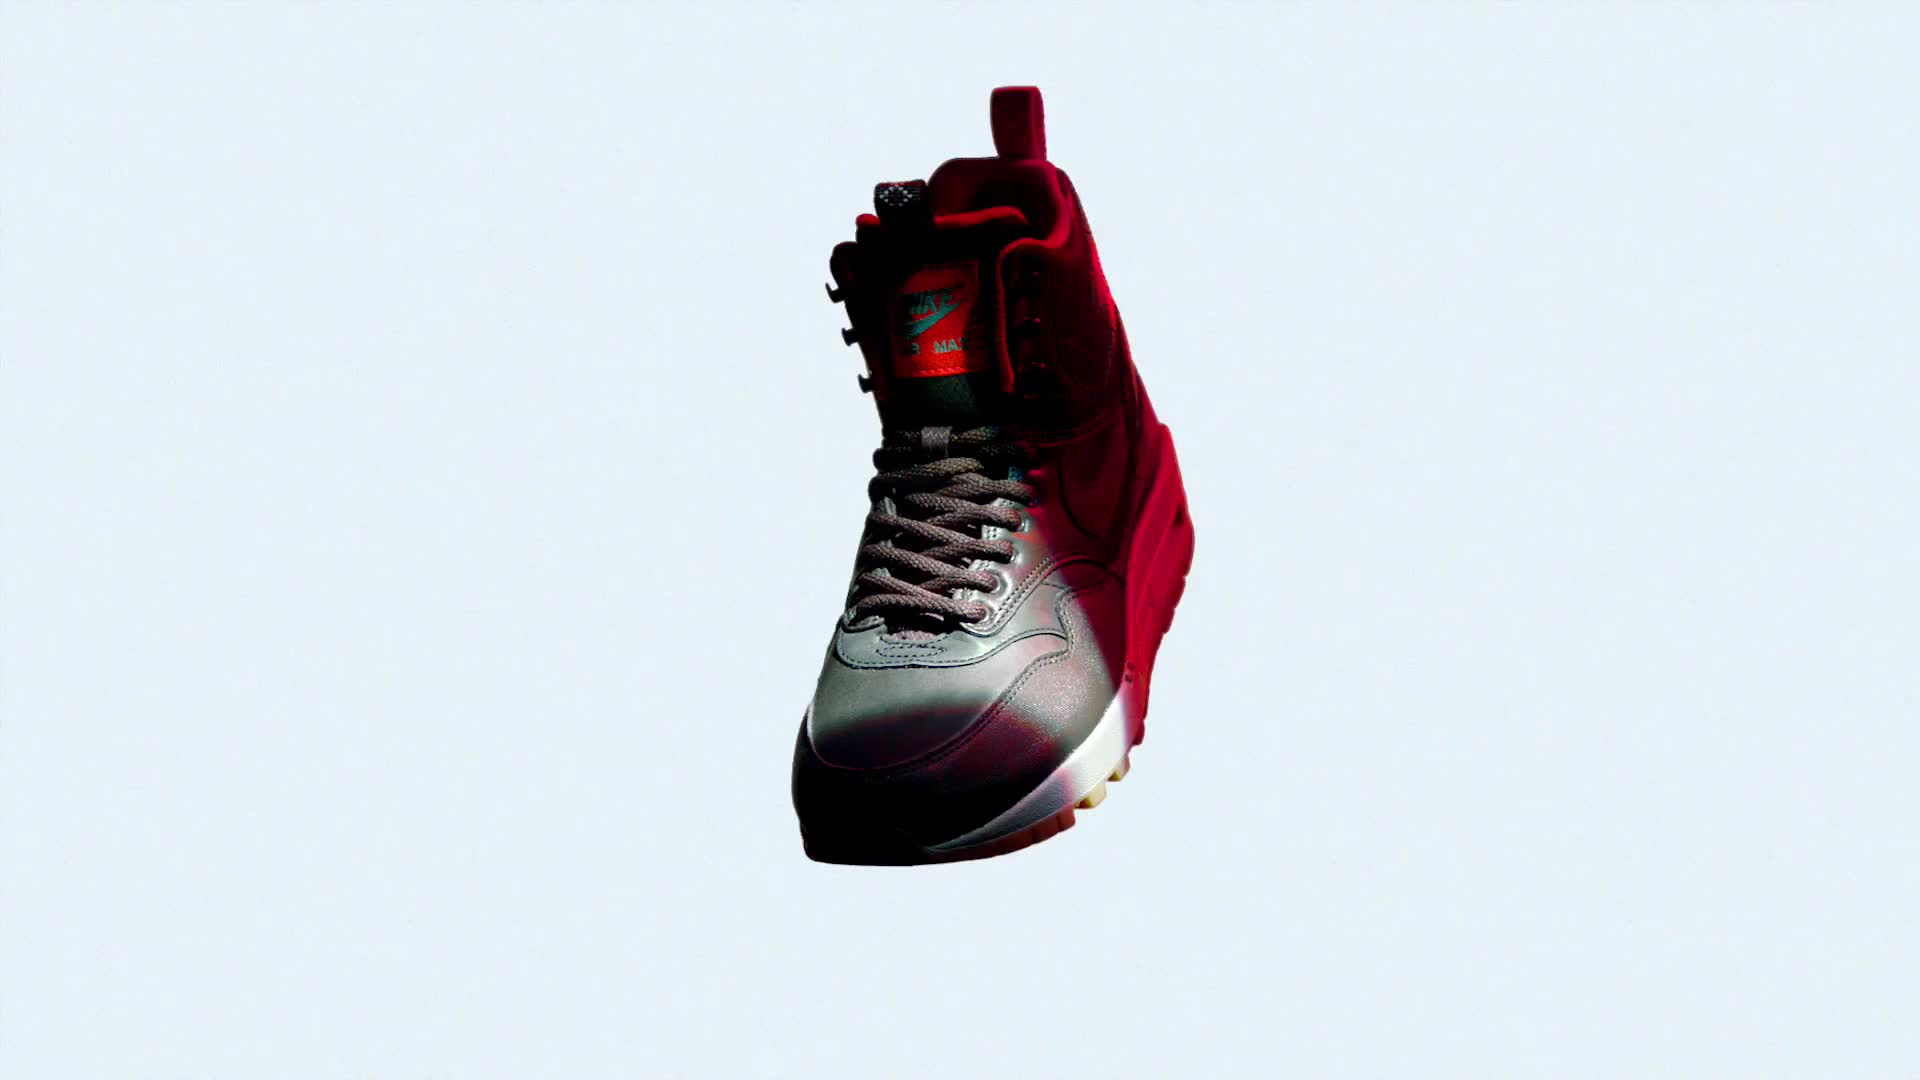 Nike Tech Pack Sneaker Boots red max transform 3d cgi